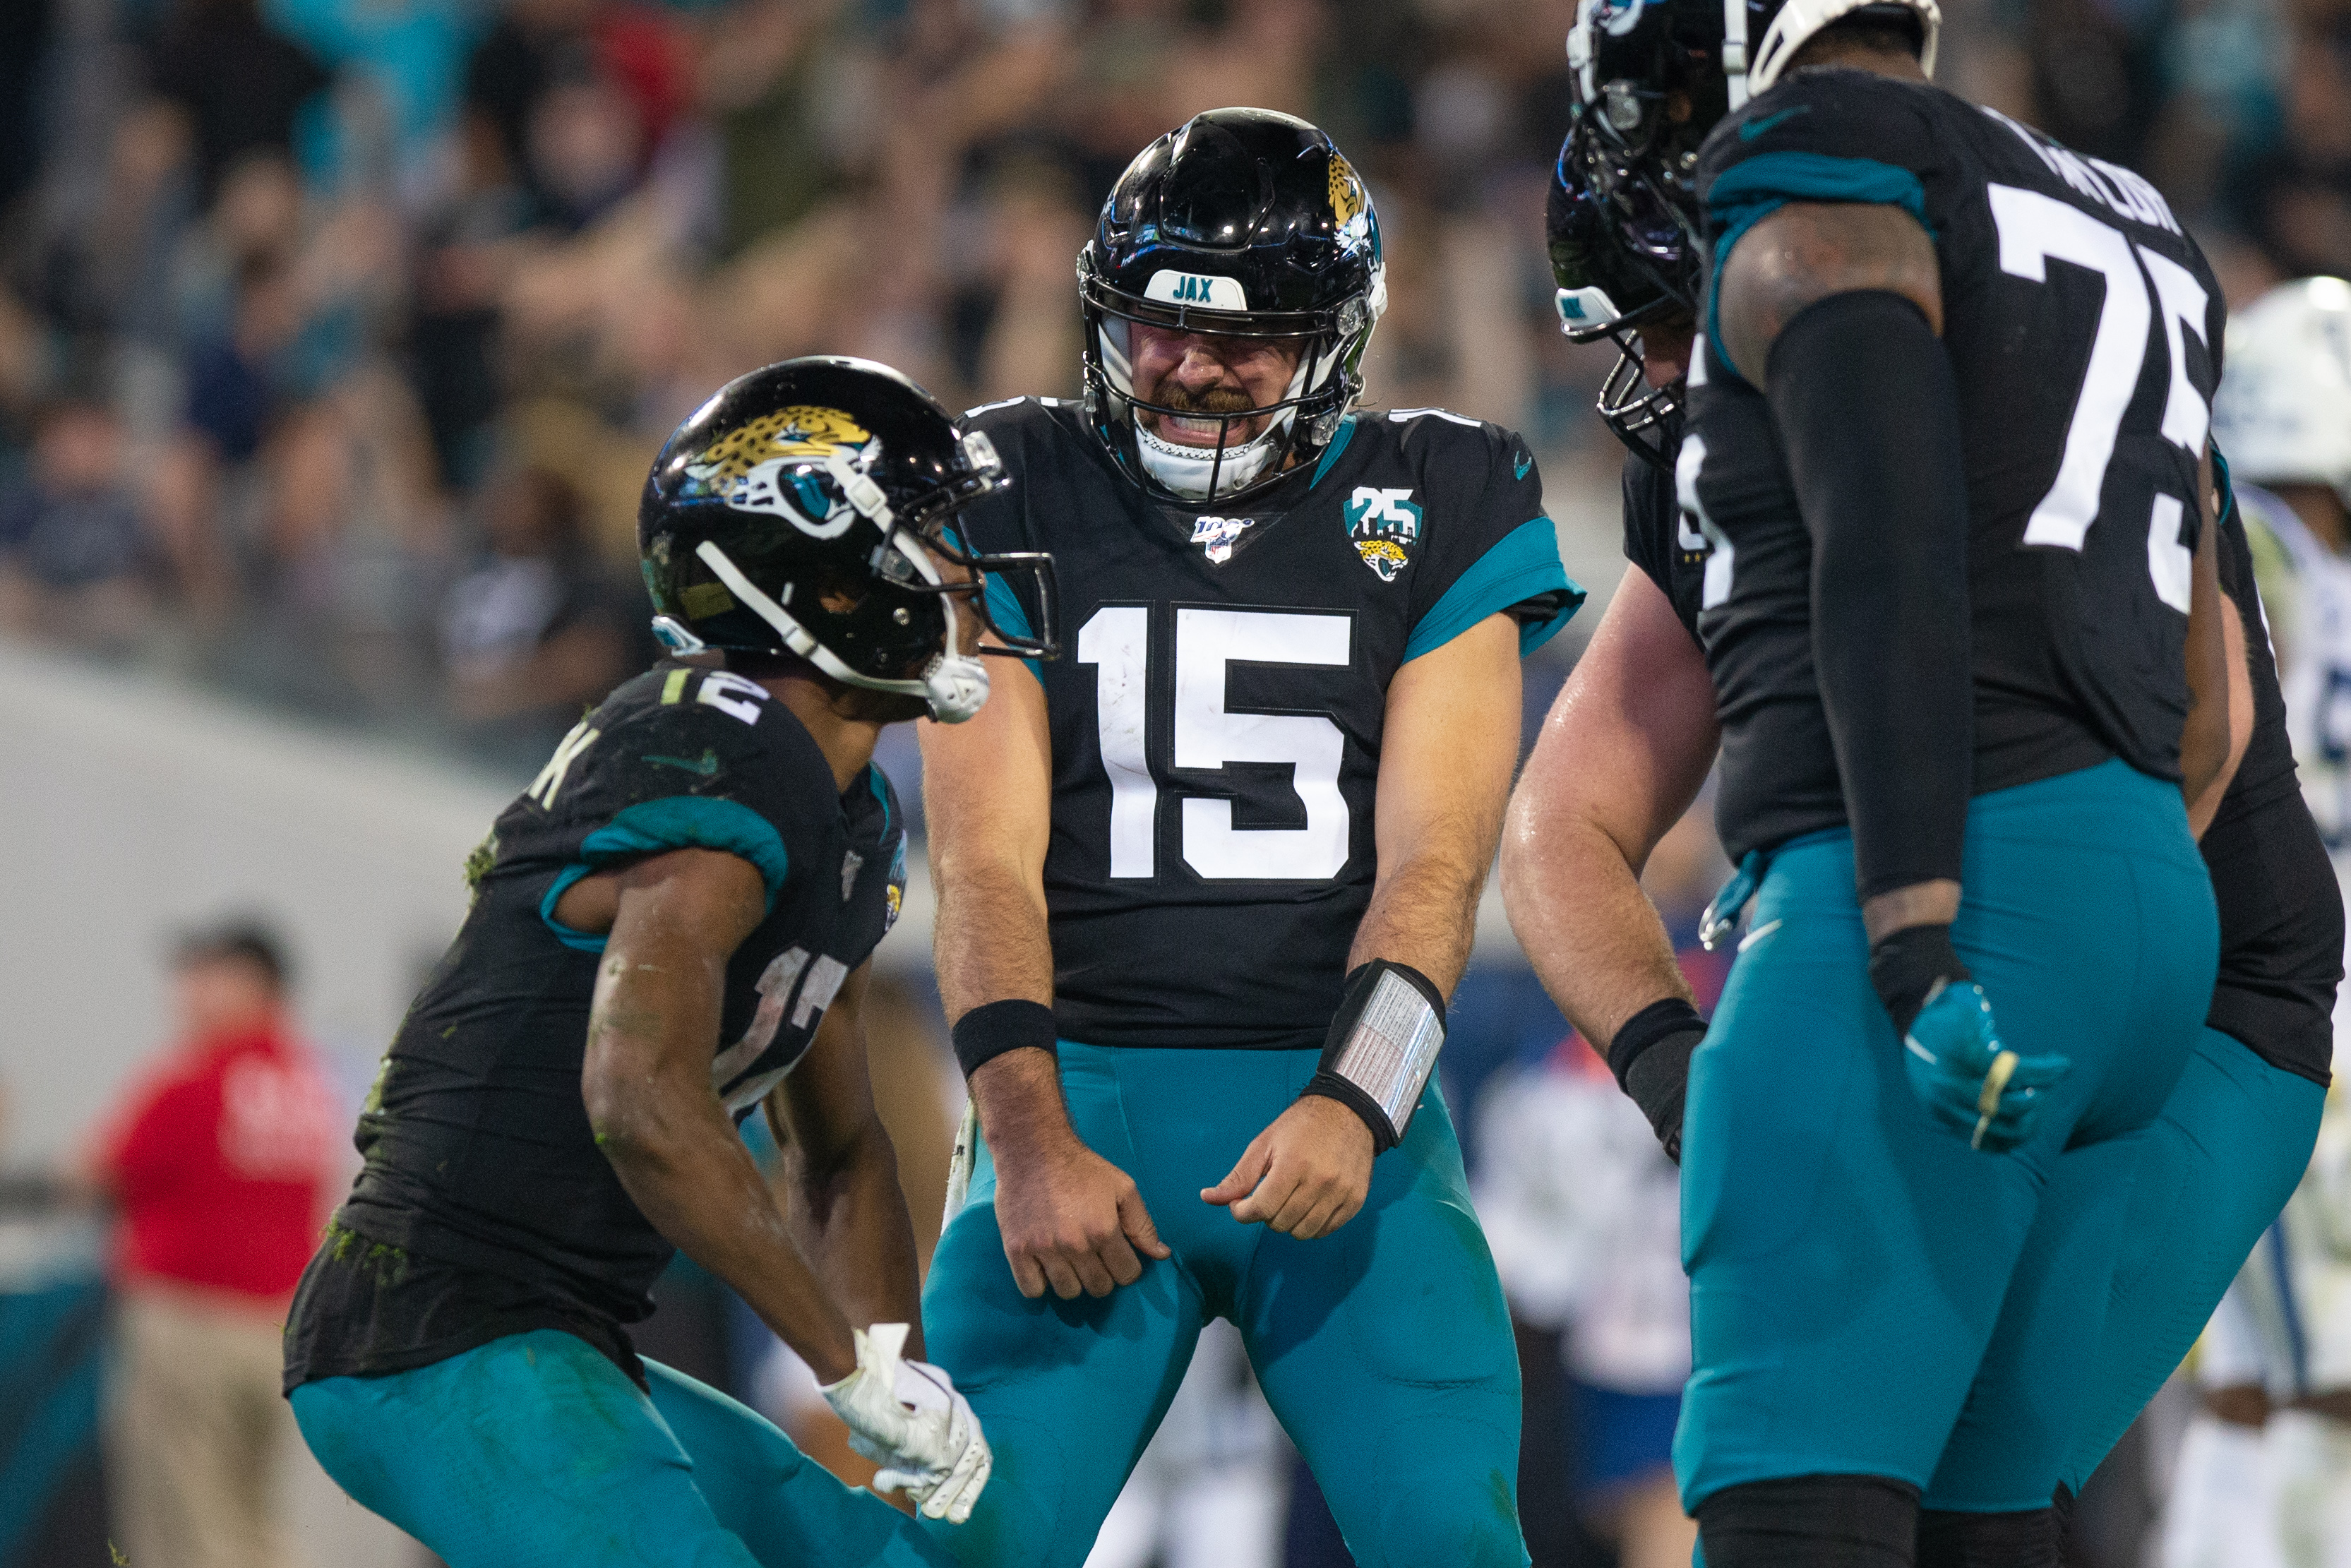 NFL: DEC 29 Colts at Jaguars